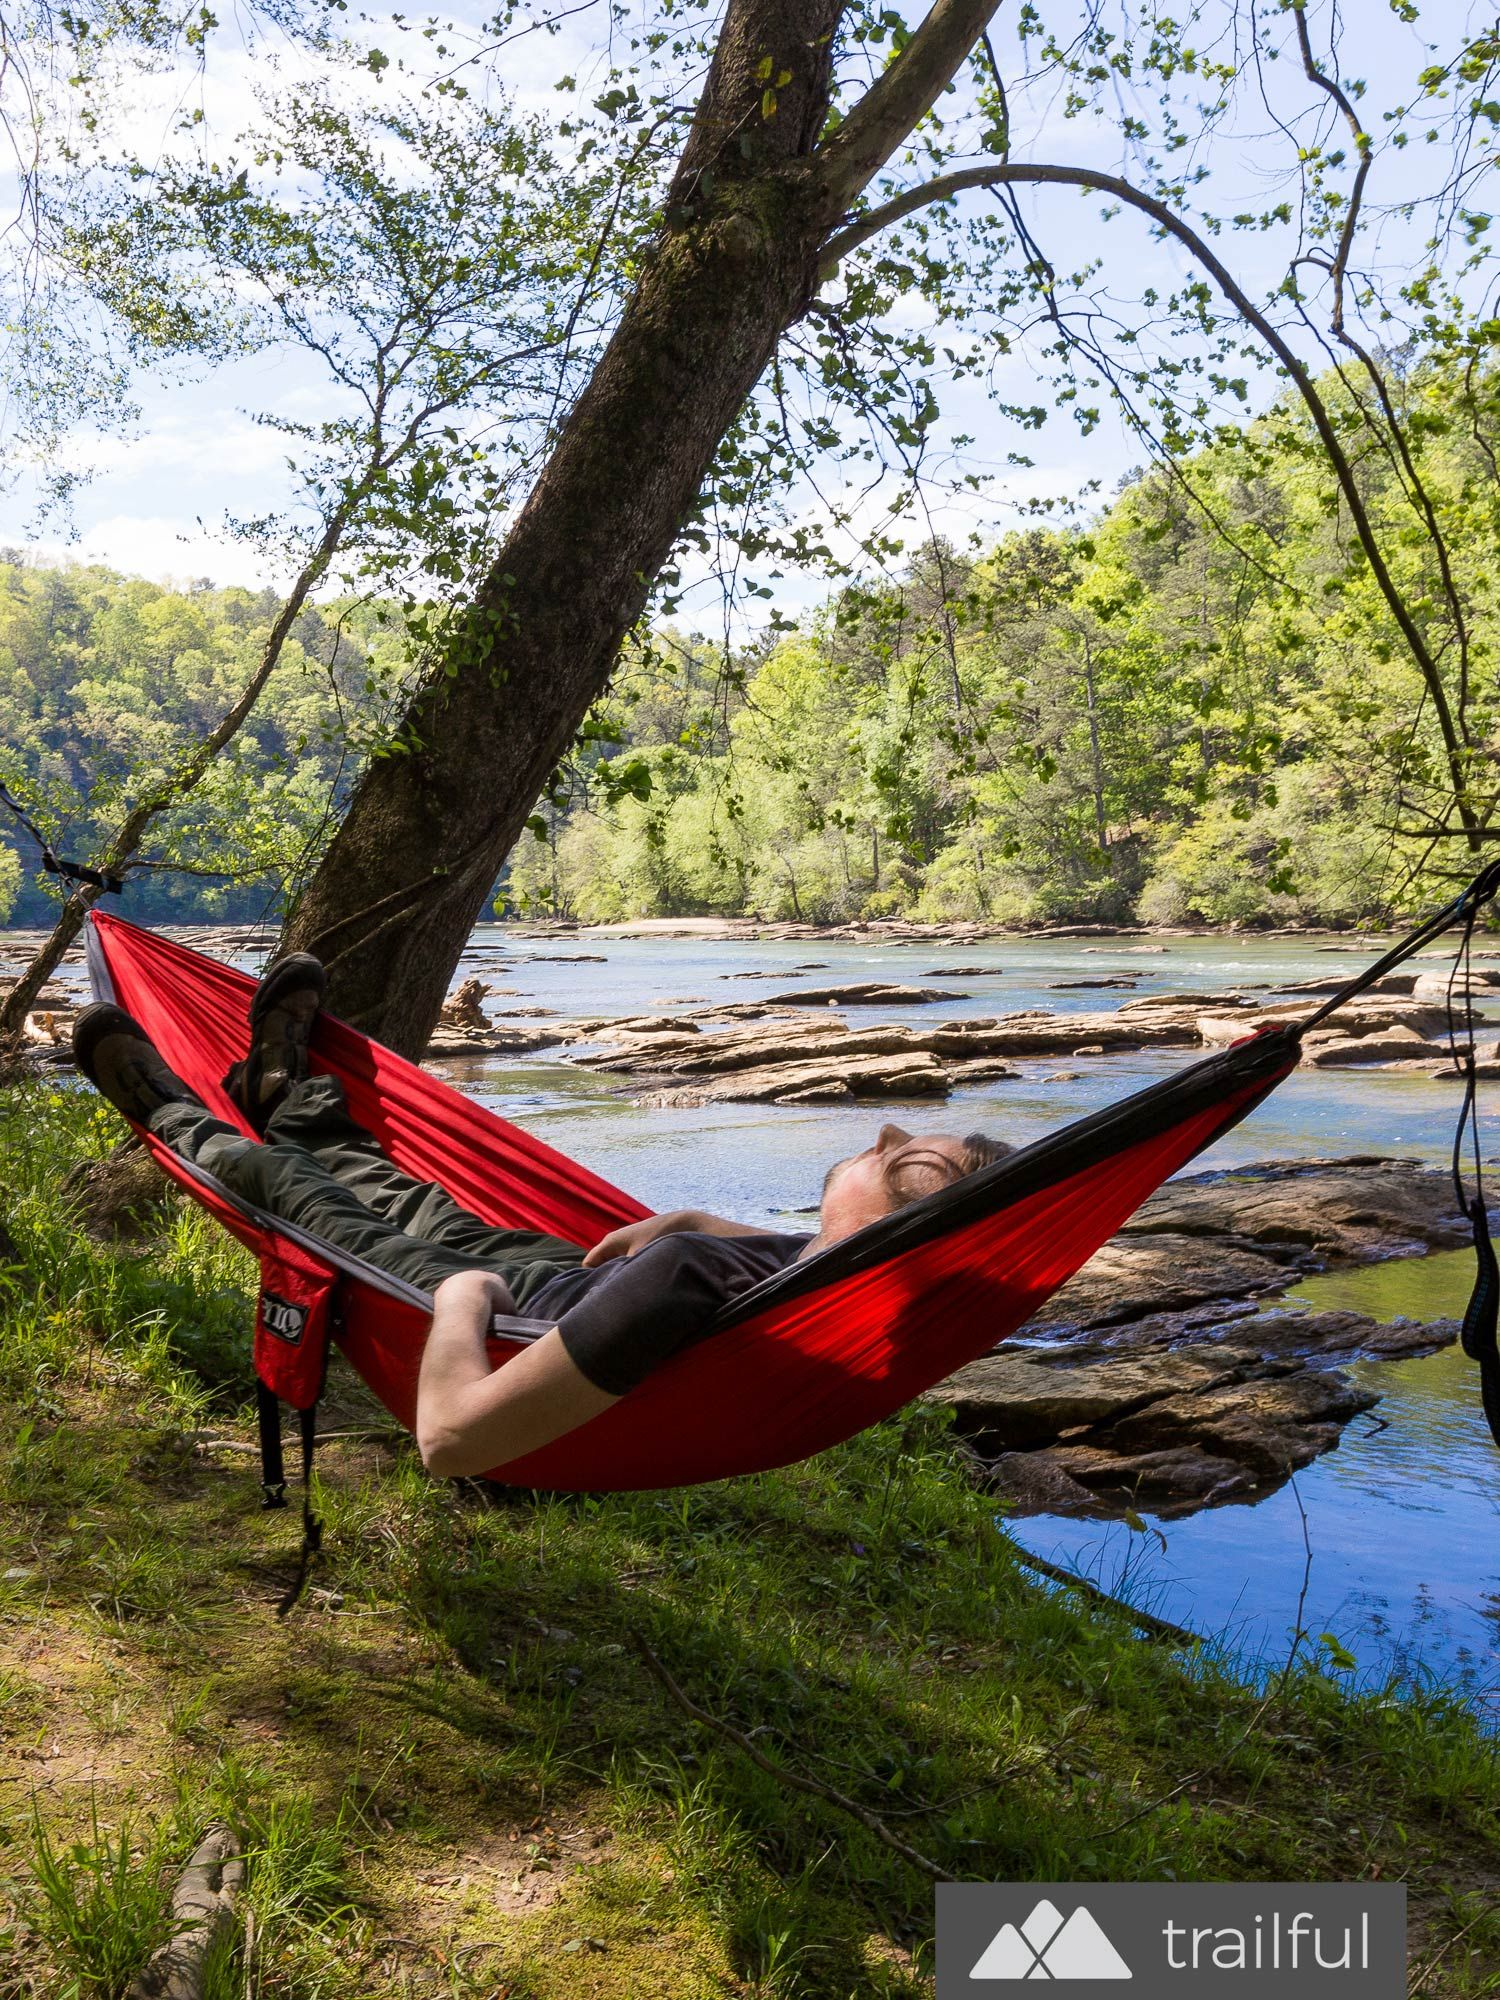 dfohome camonest hammocks straps forweb castaway hammock camoxlcombo camping doublenest xx eno and with camonestforest travel combo xl